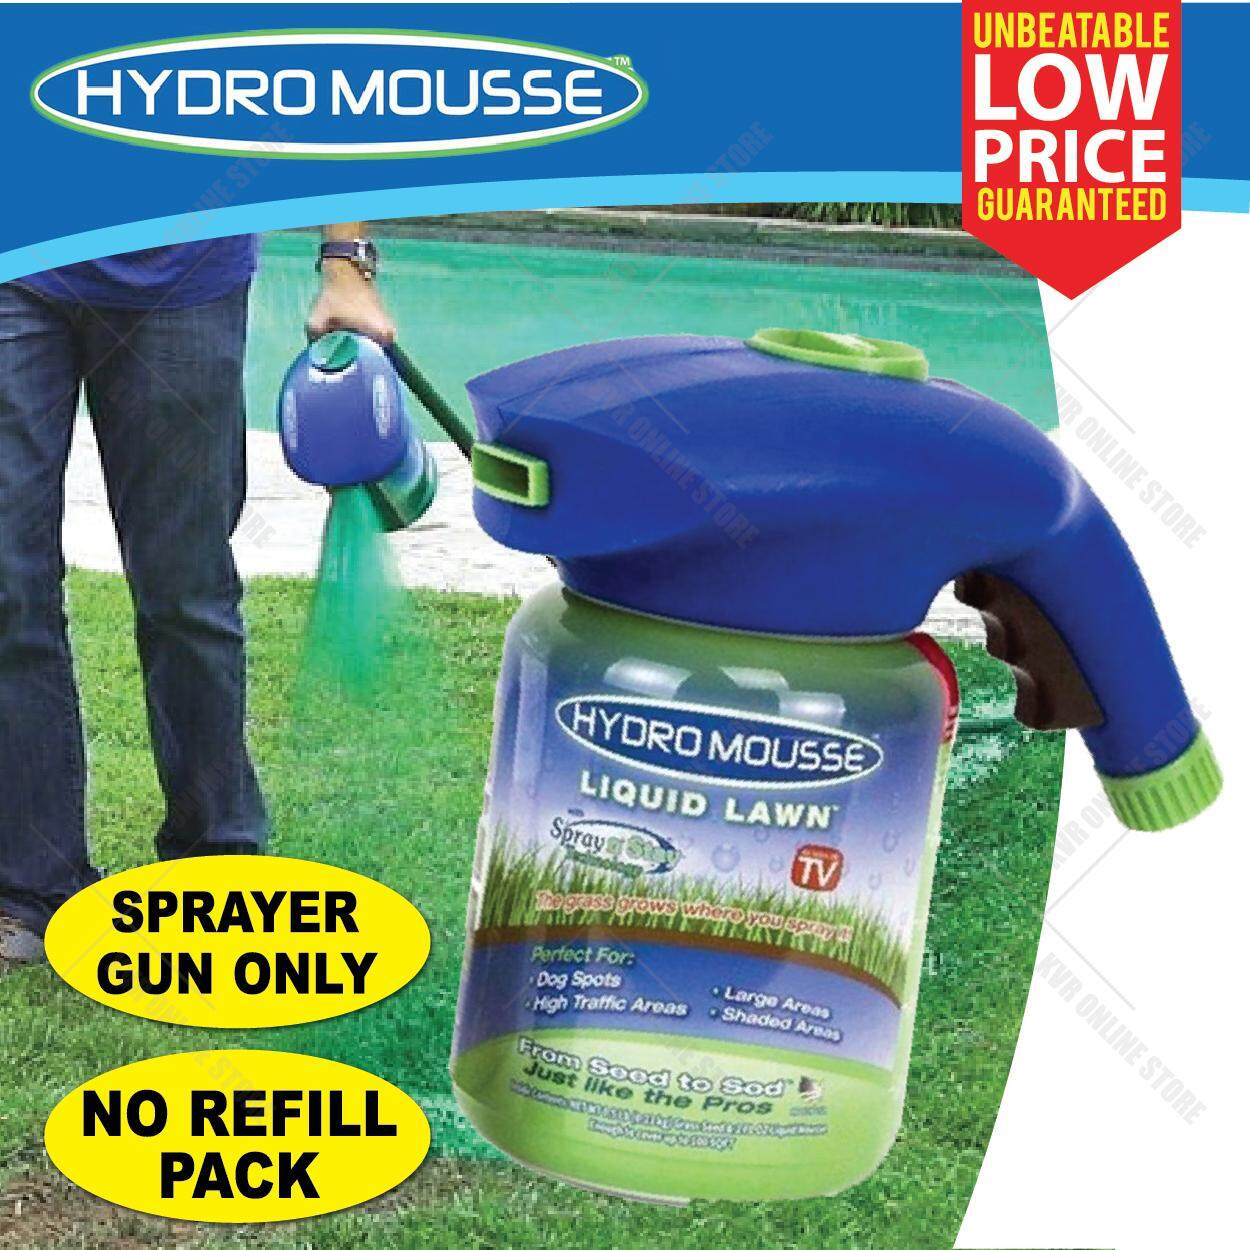 Hydro Mousse Sprayer Gun Liquid Lawn Garden Growth Grass Hydroseeding